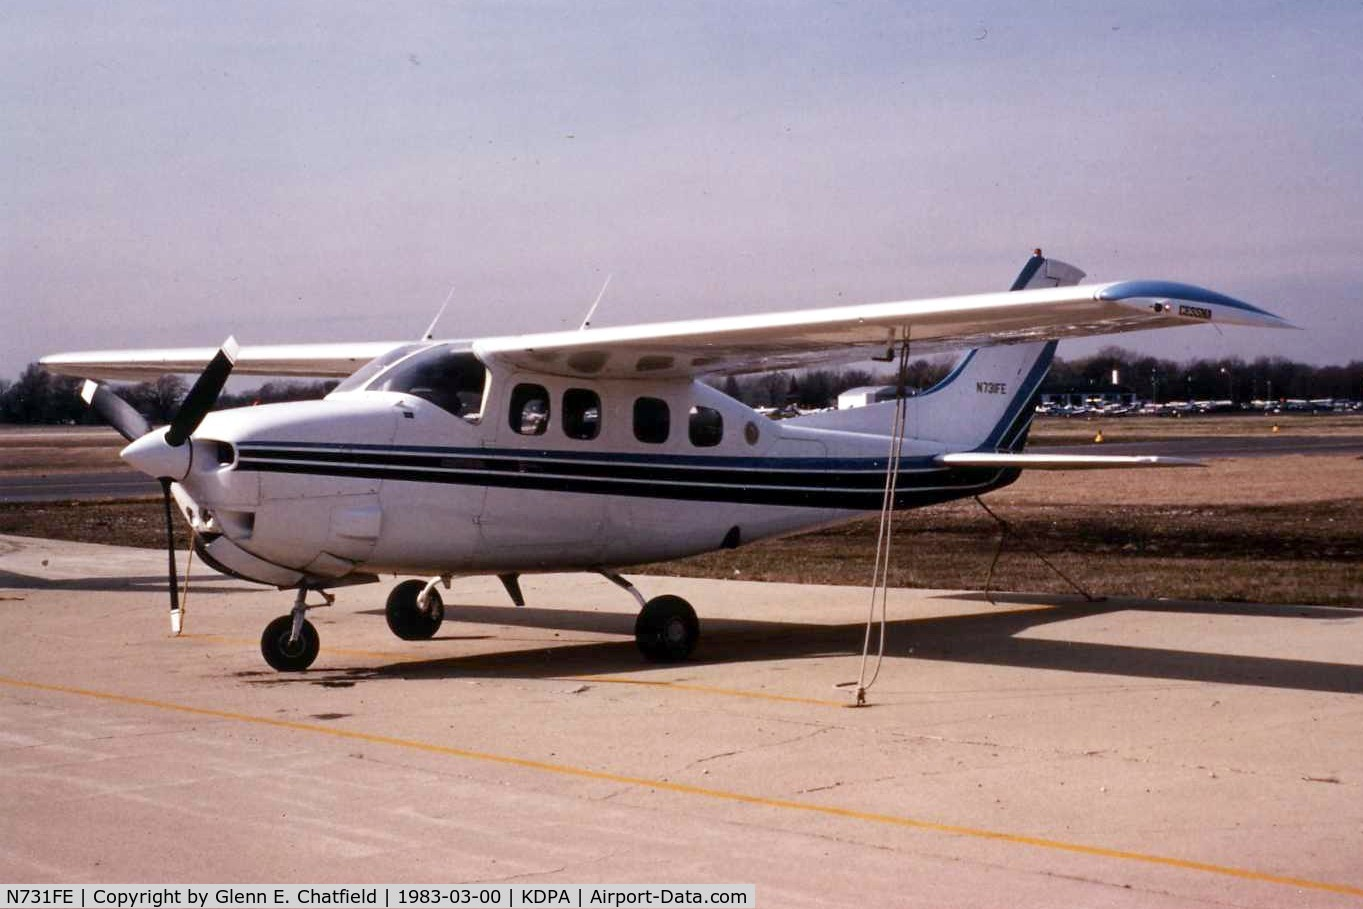 N731FE, 1979 Cessna P210N Pressurised Centurion C/N P21000450, Photo taken for aircraft recognition training